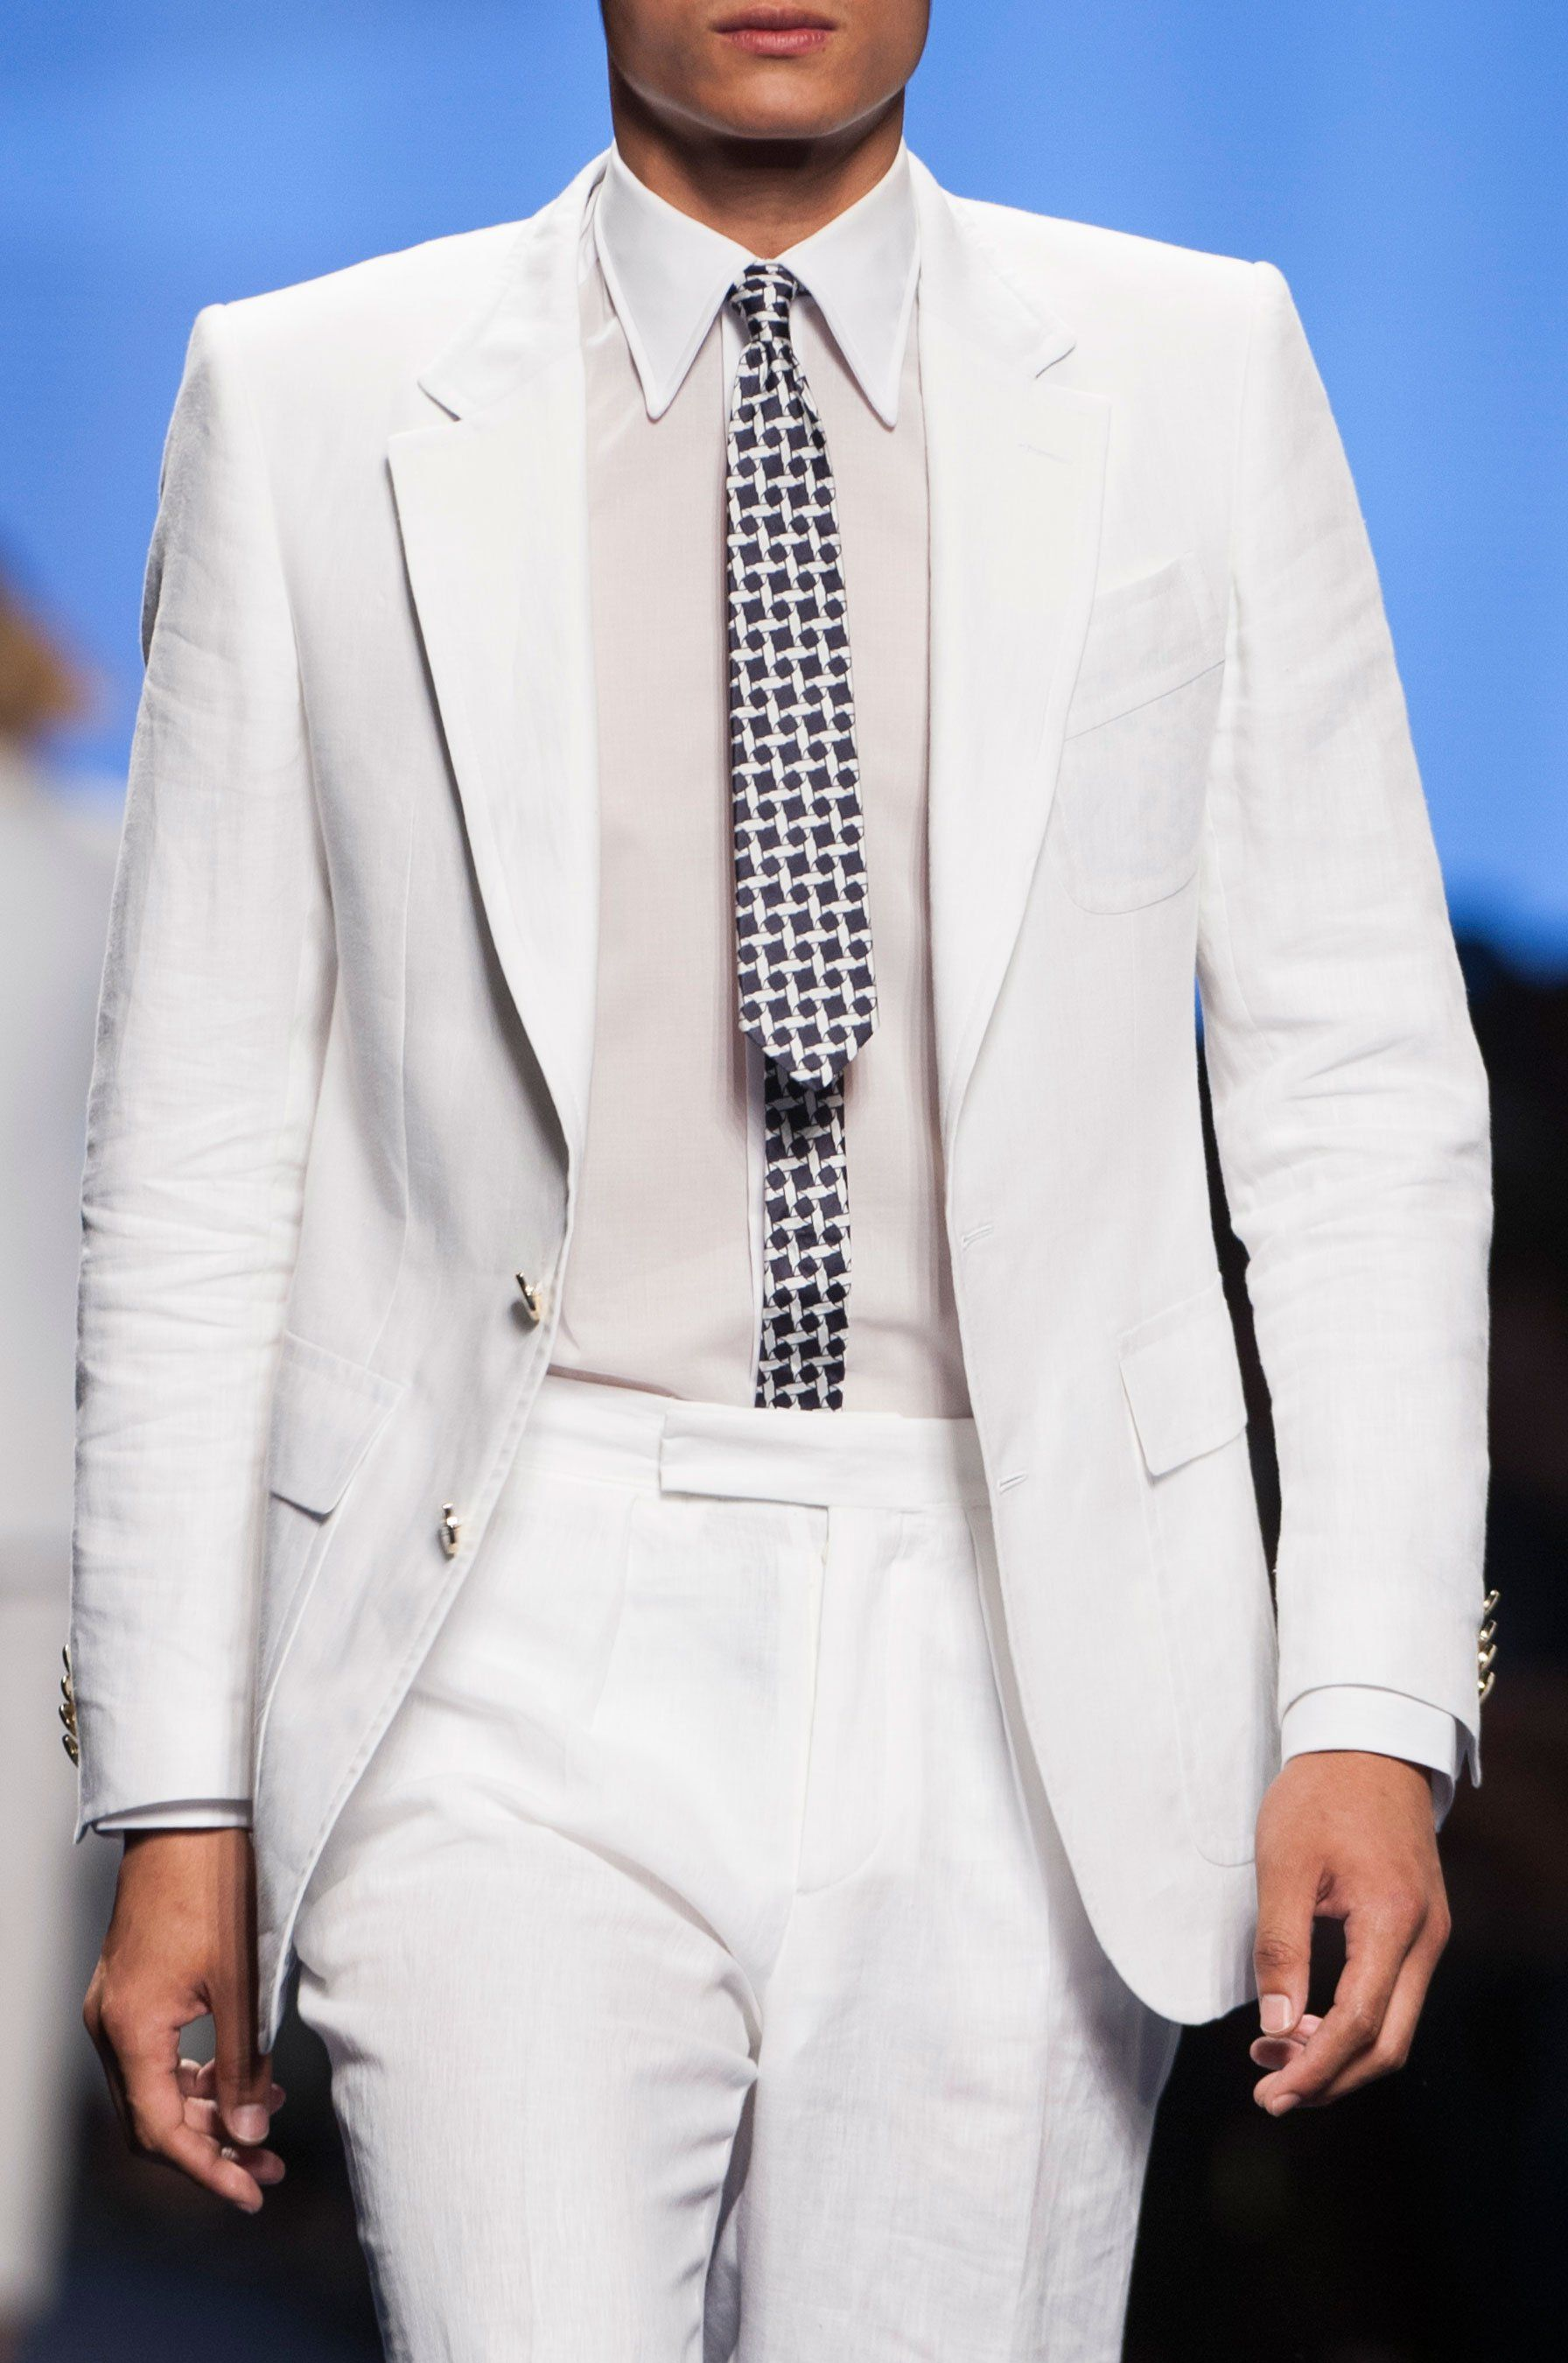 Etro Spring 2015 Menswear He Needs To Fix His Tie That Look Is